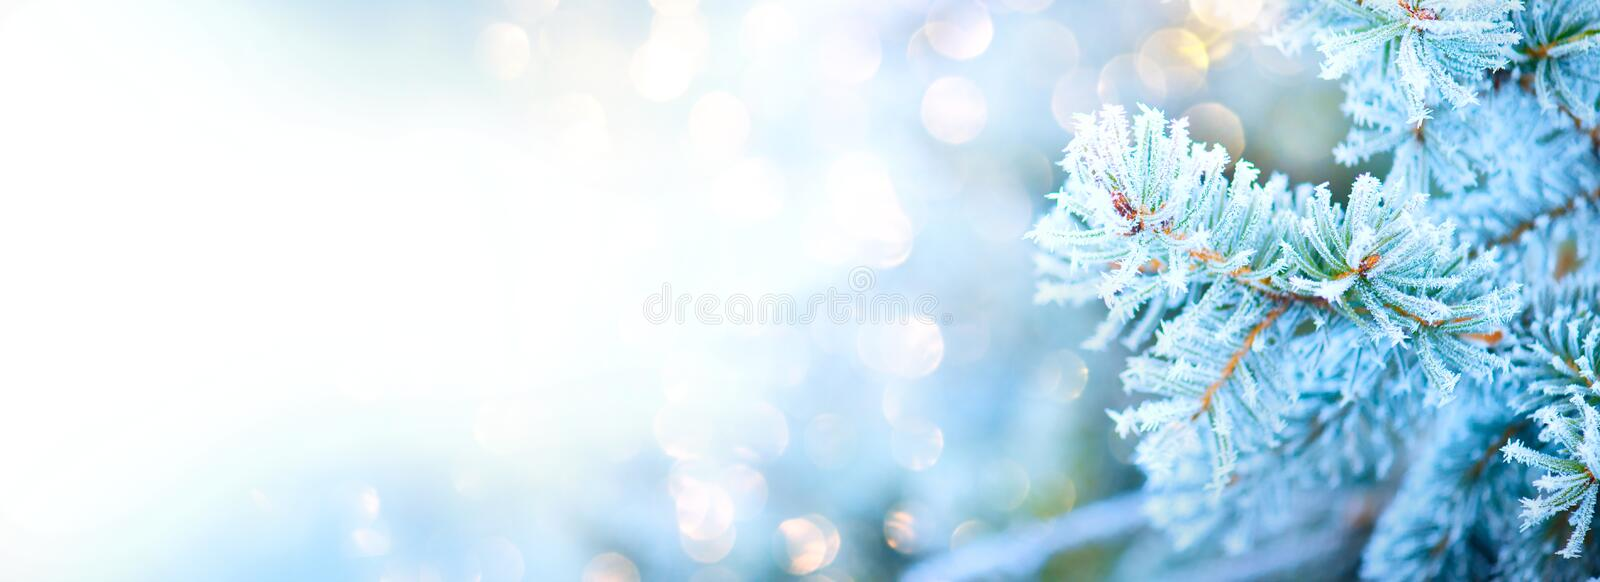 Winter tree holiday snow background. Blue spruce, Christmas and New Year tree border art design, abstract blue backdrop stock photography